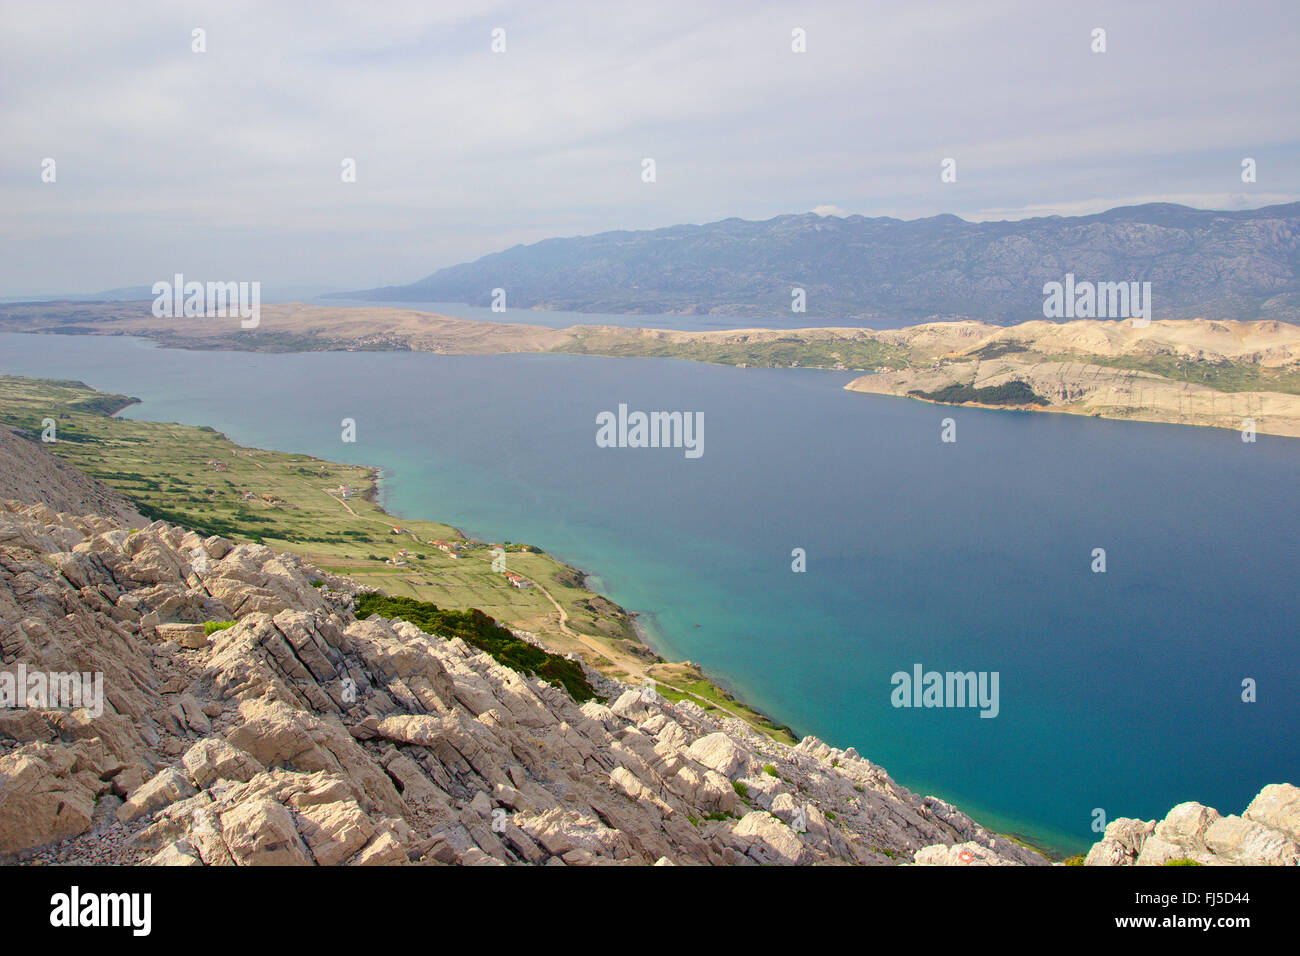 view from Sveti Vid mountain to Pag island and Velebit mountains, Croatia - Stock Image